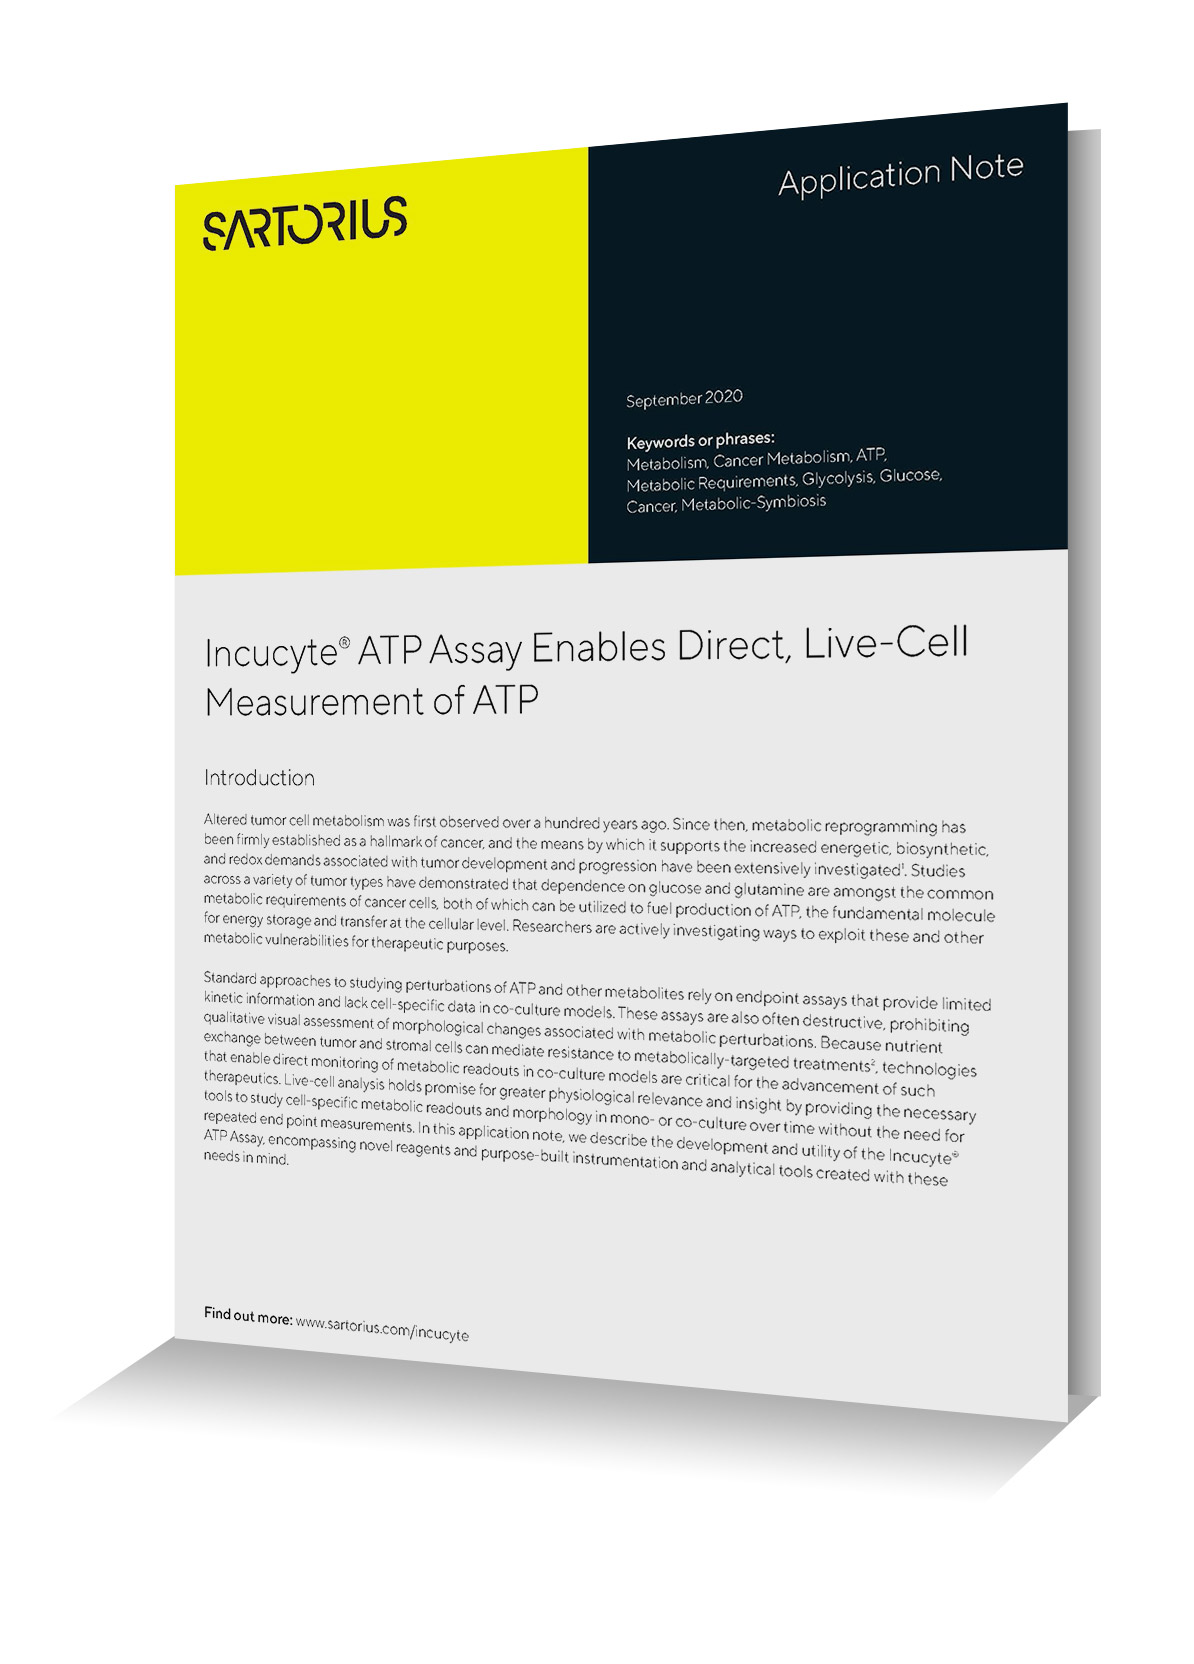 Application Note: ATP Assay Enables Direct, Live-Cell Measurement of ATP